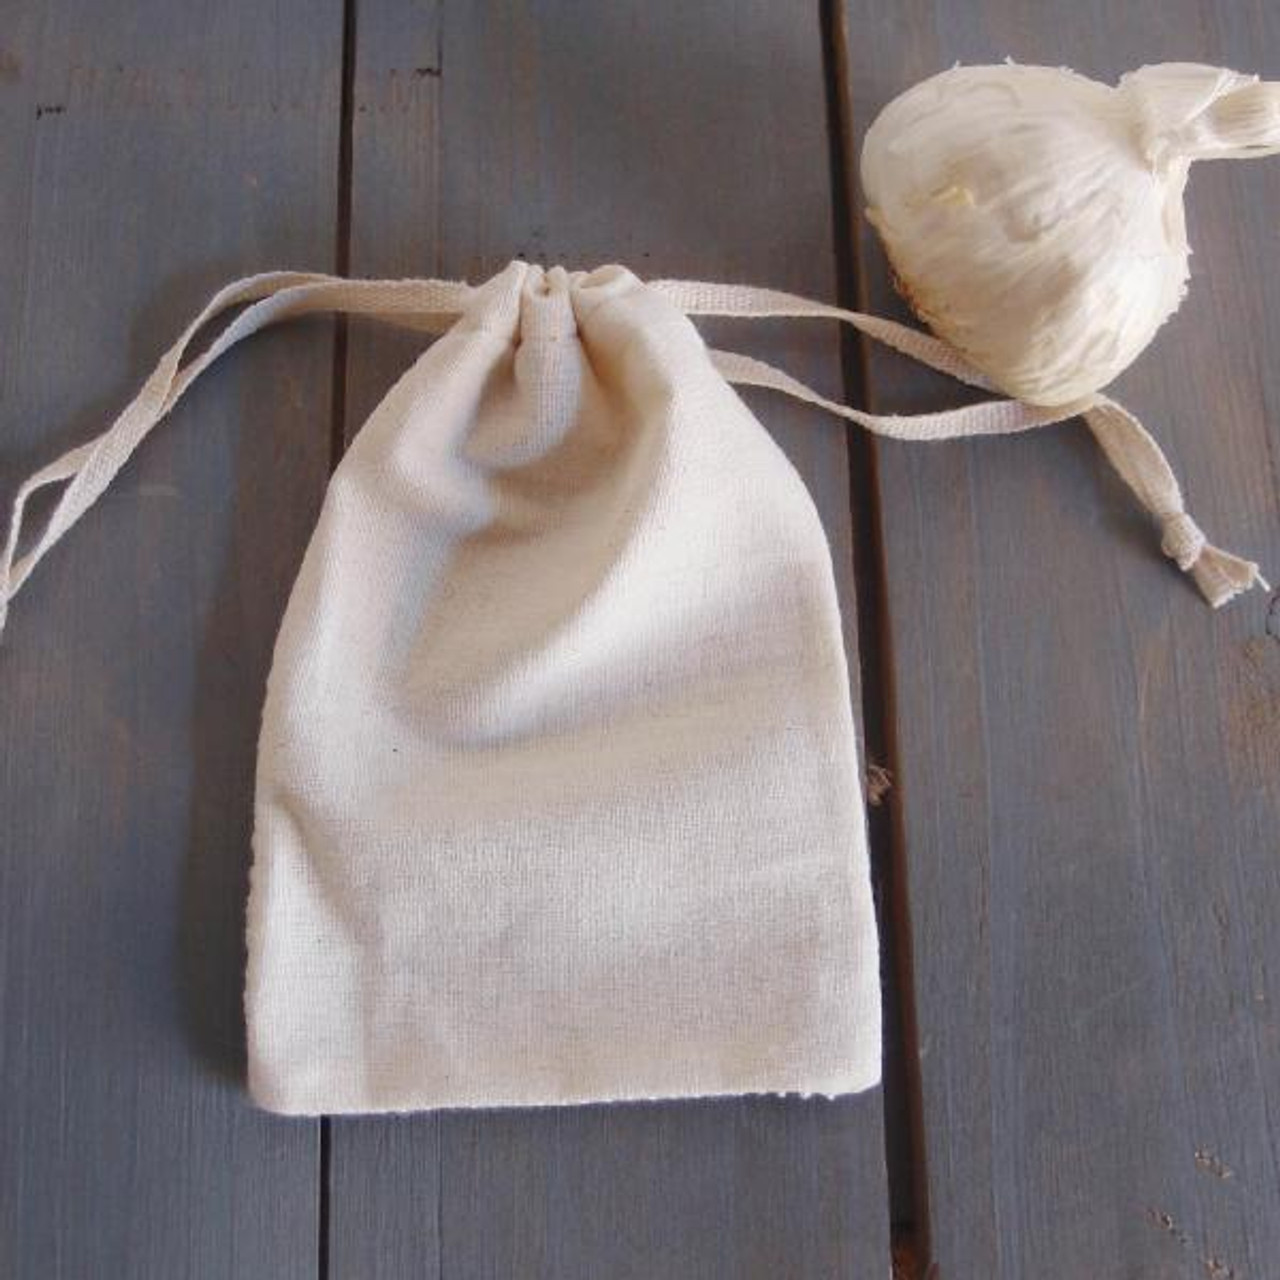 Cotton Net Drawstring Bag with Fabric Backing  (3 sizes)